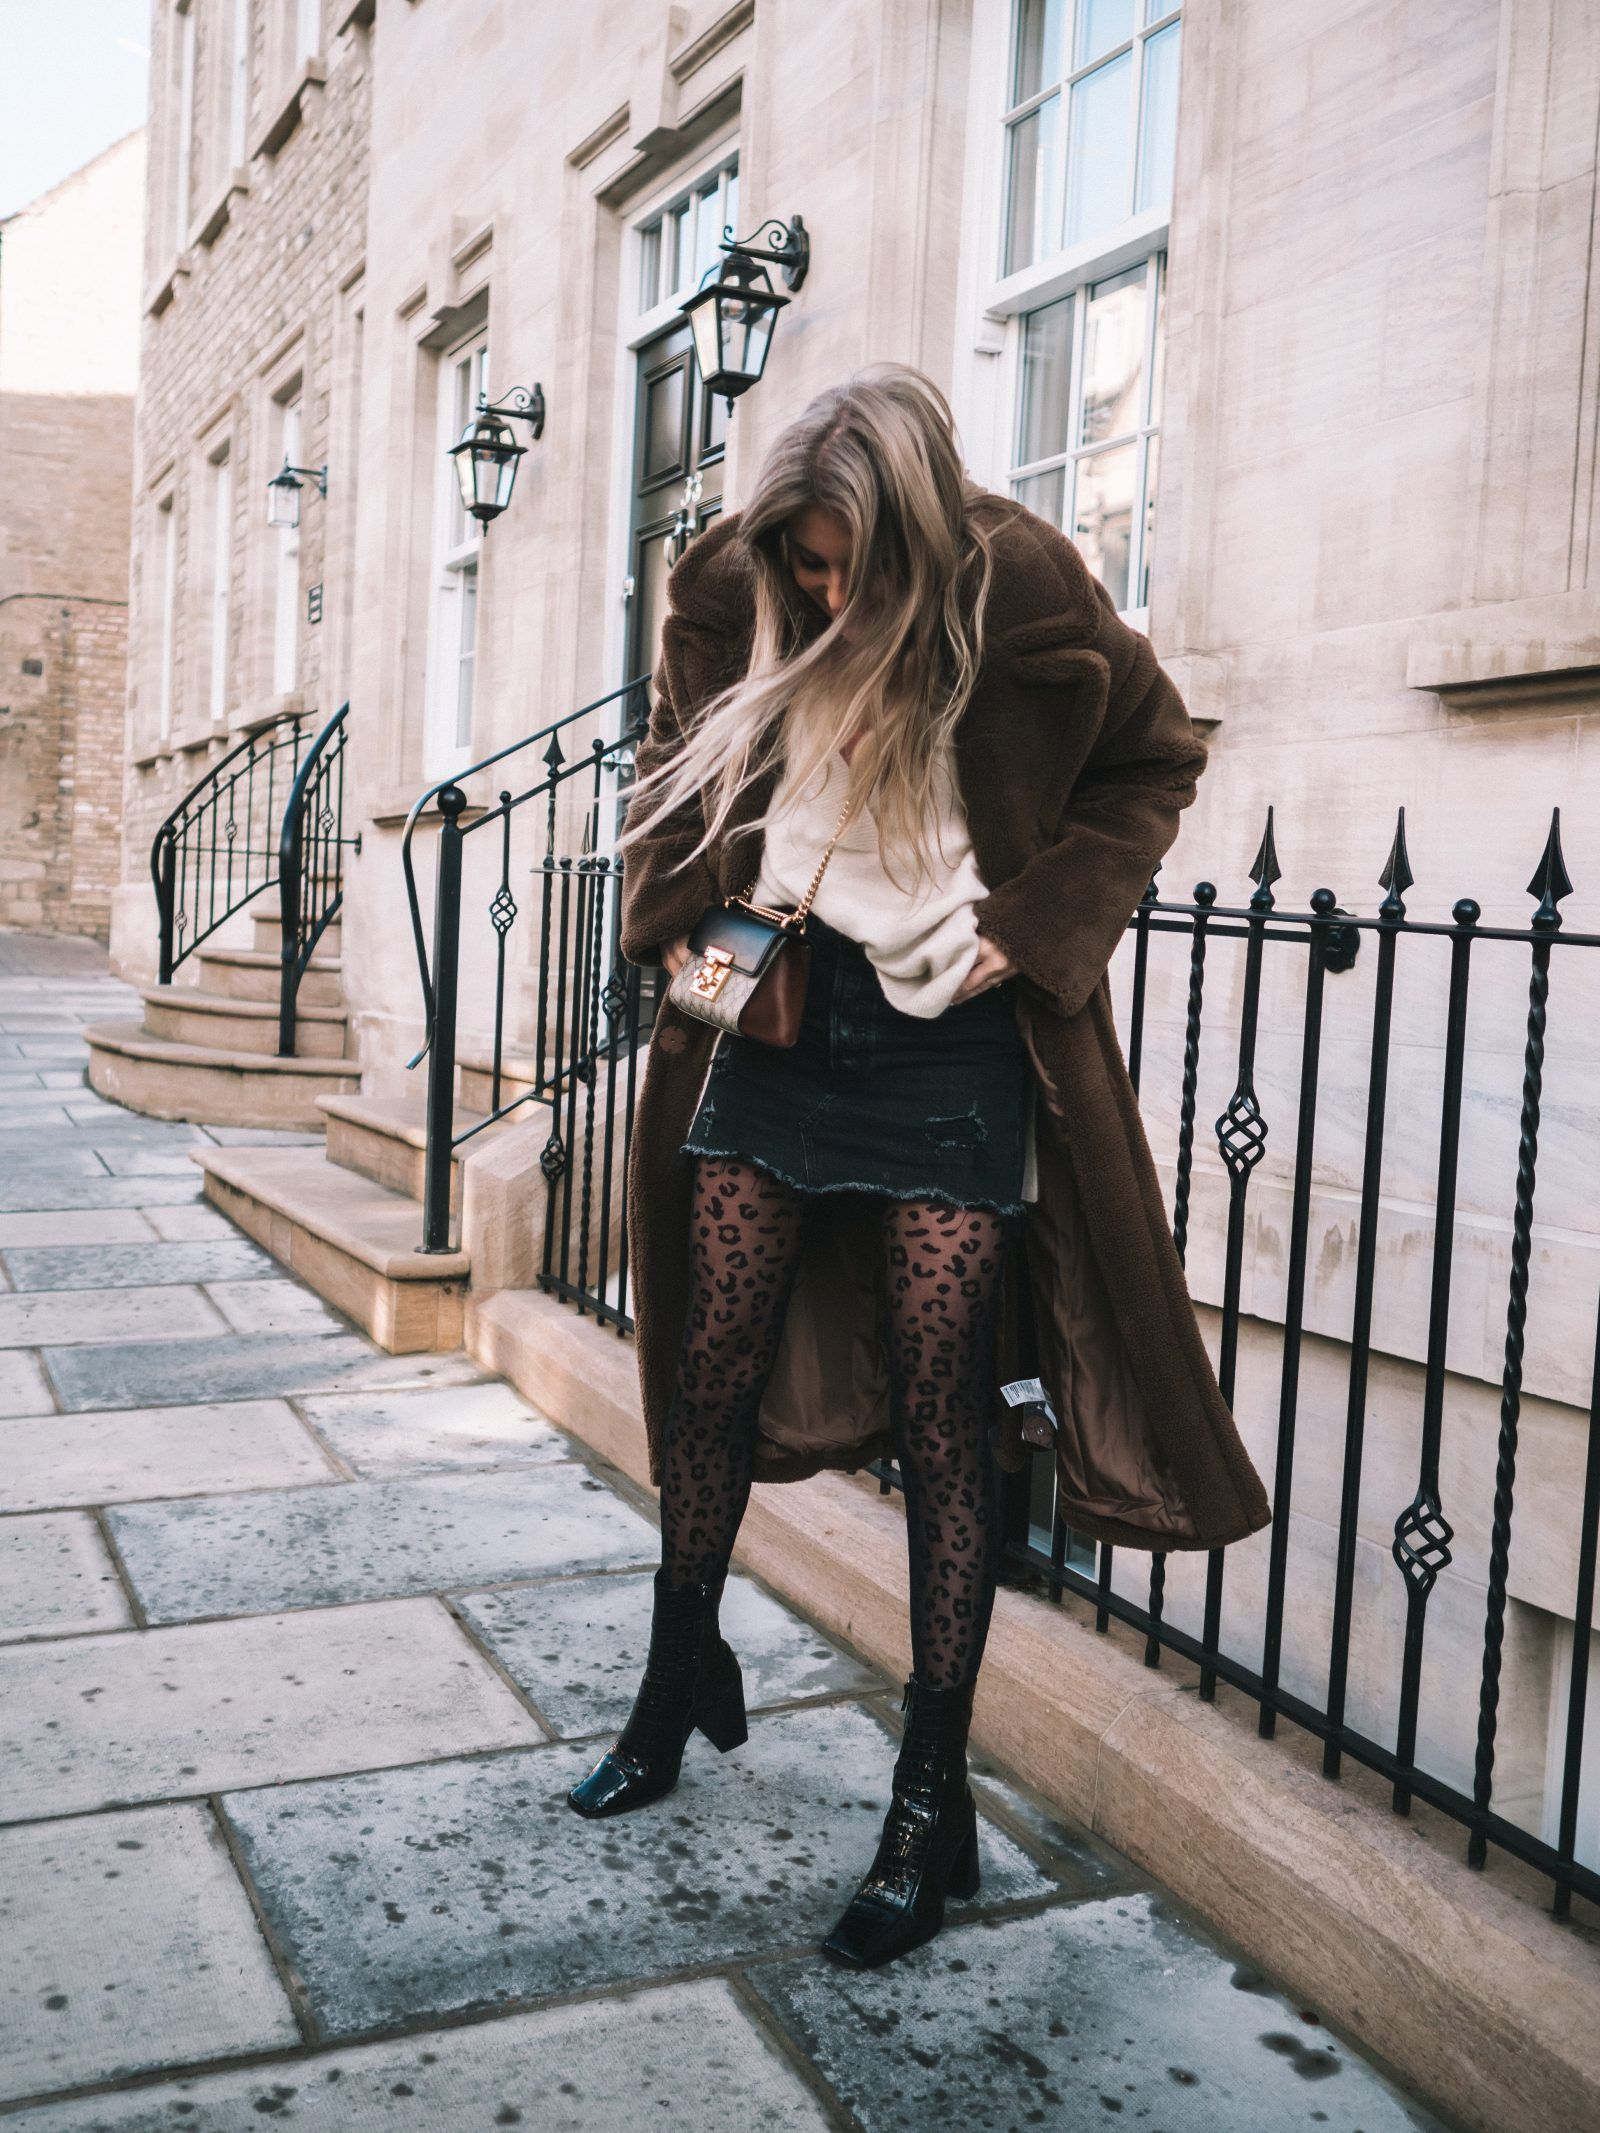 The Warmest Coat You'll Find This Season | Love Style Mindfulness - Fashion & Personal Style Blog